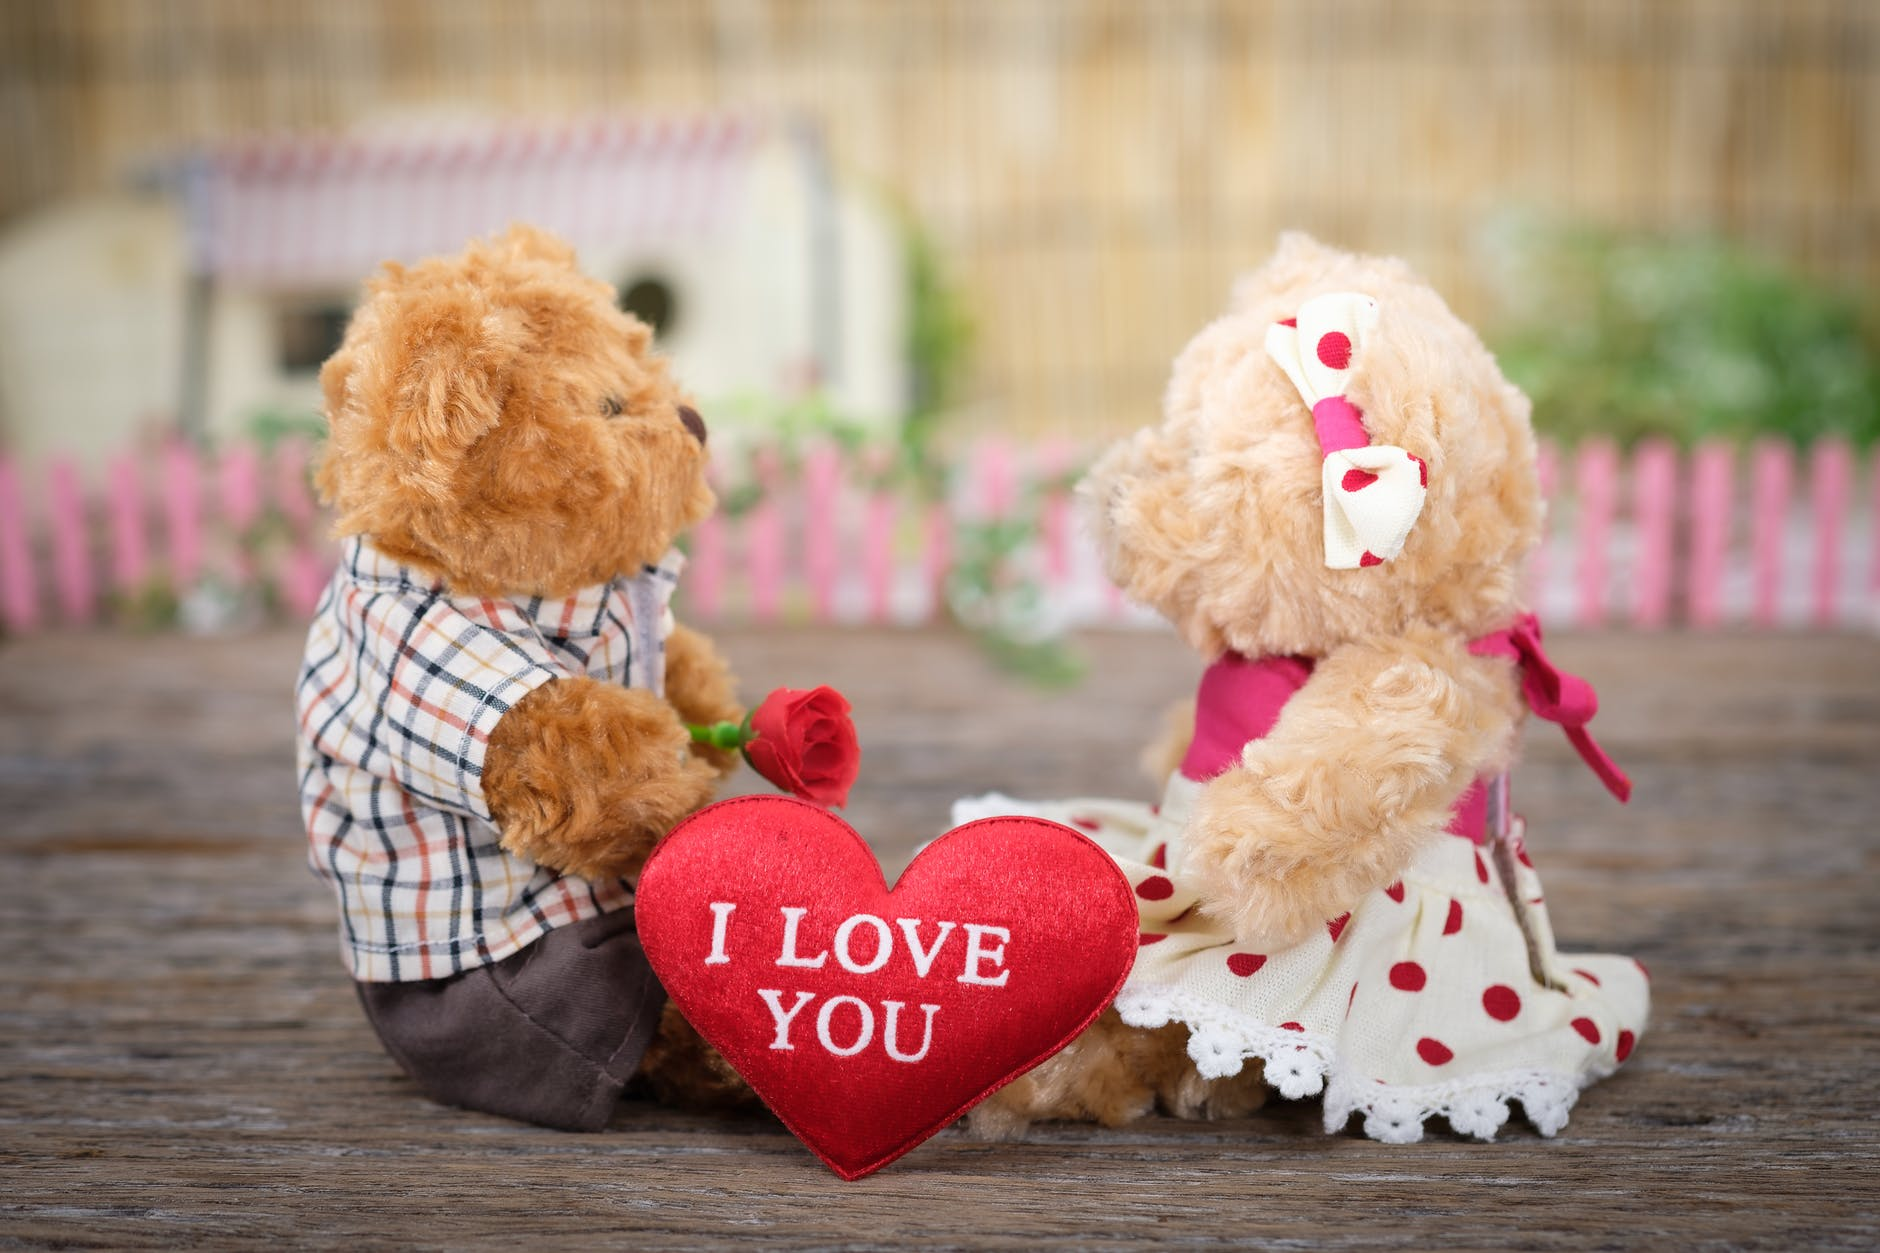 photo of teddy bears sitting on wood